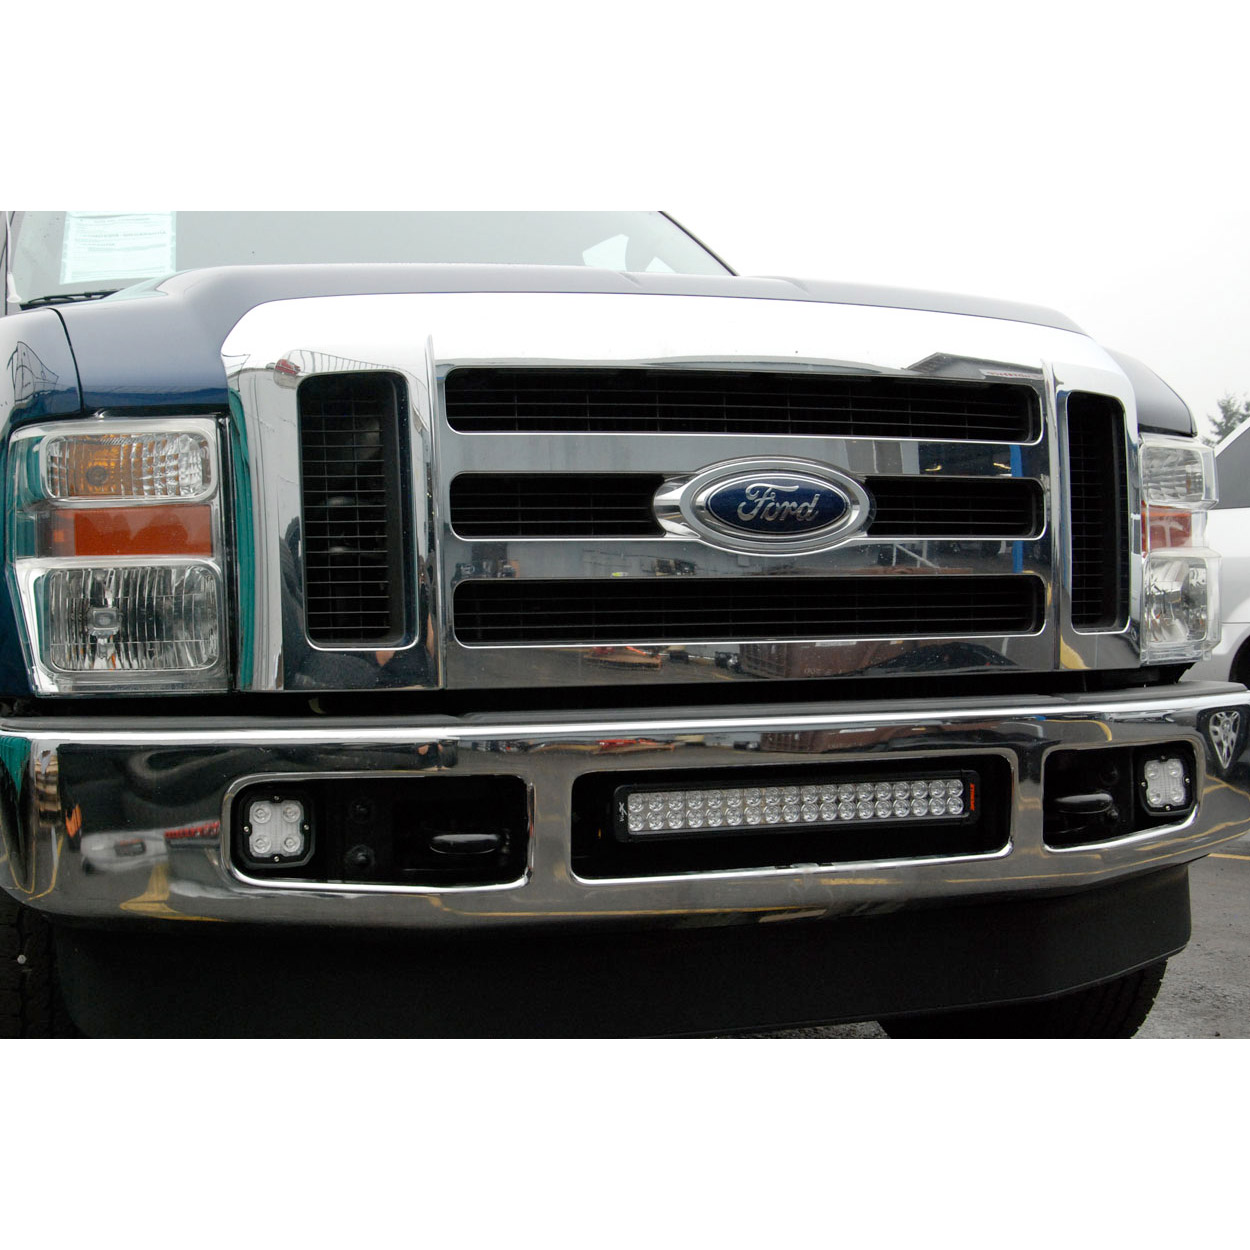 Ford superduty bumper mount for led light bar 2008 2010 xil bracket combined with a vision x 21 led bar which you can purchase here httpsvxwholesale21 xmitter prime xtreme vision x led light bars mozeypictures Images